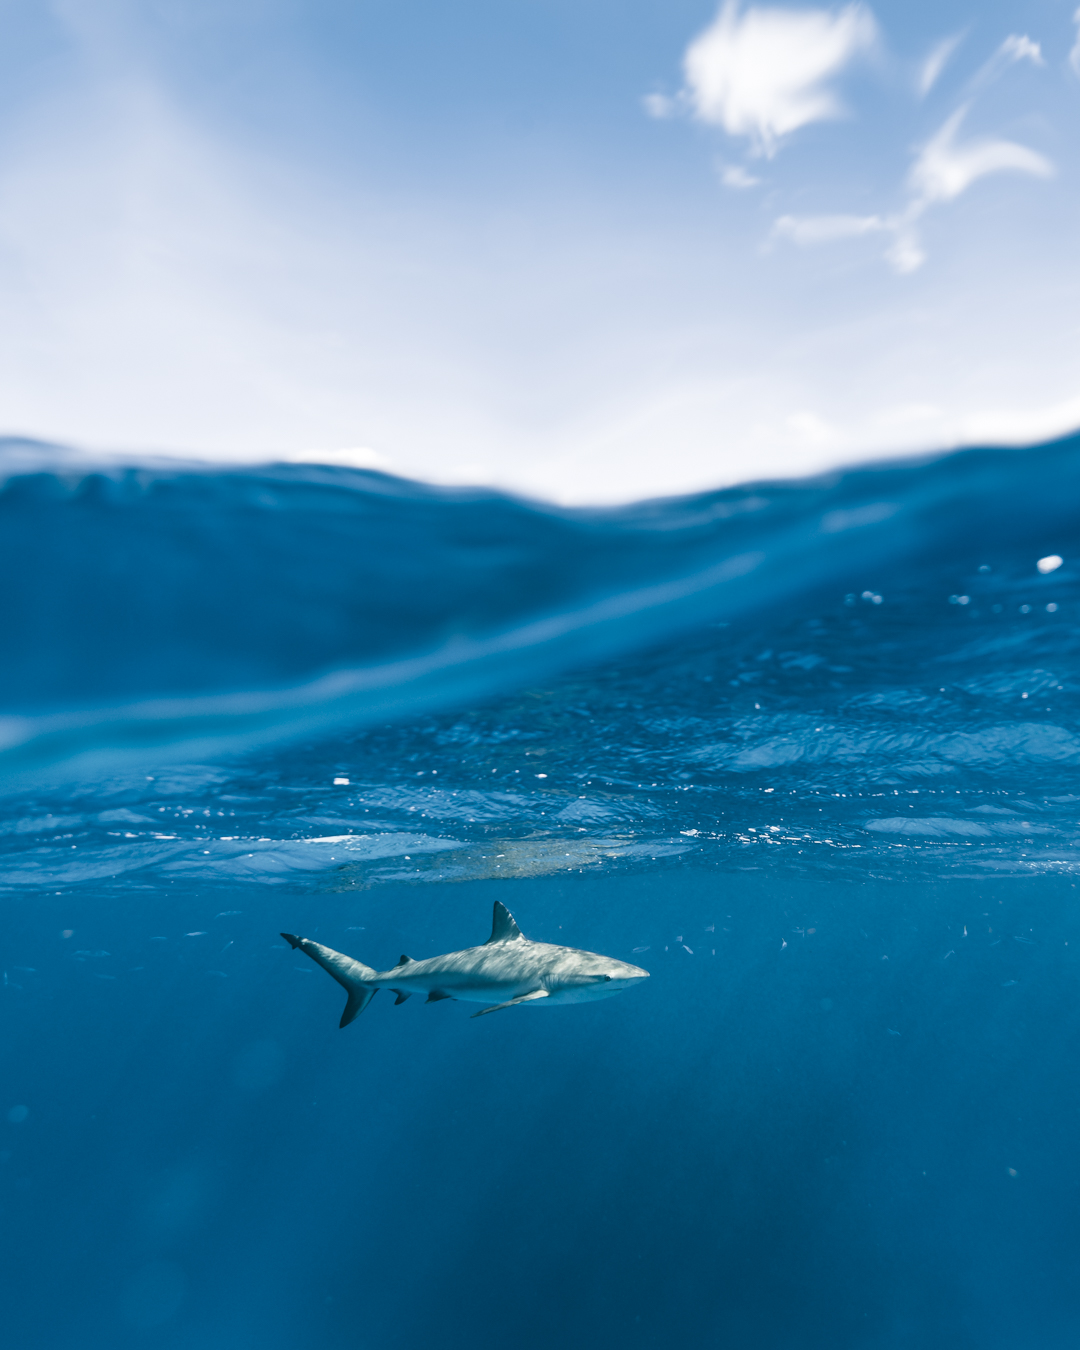 Swimming with sharks in the Bahamas-4.jpg